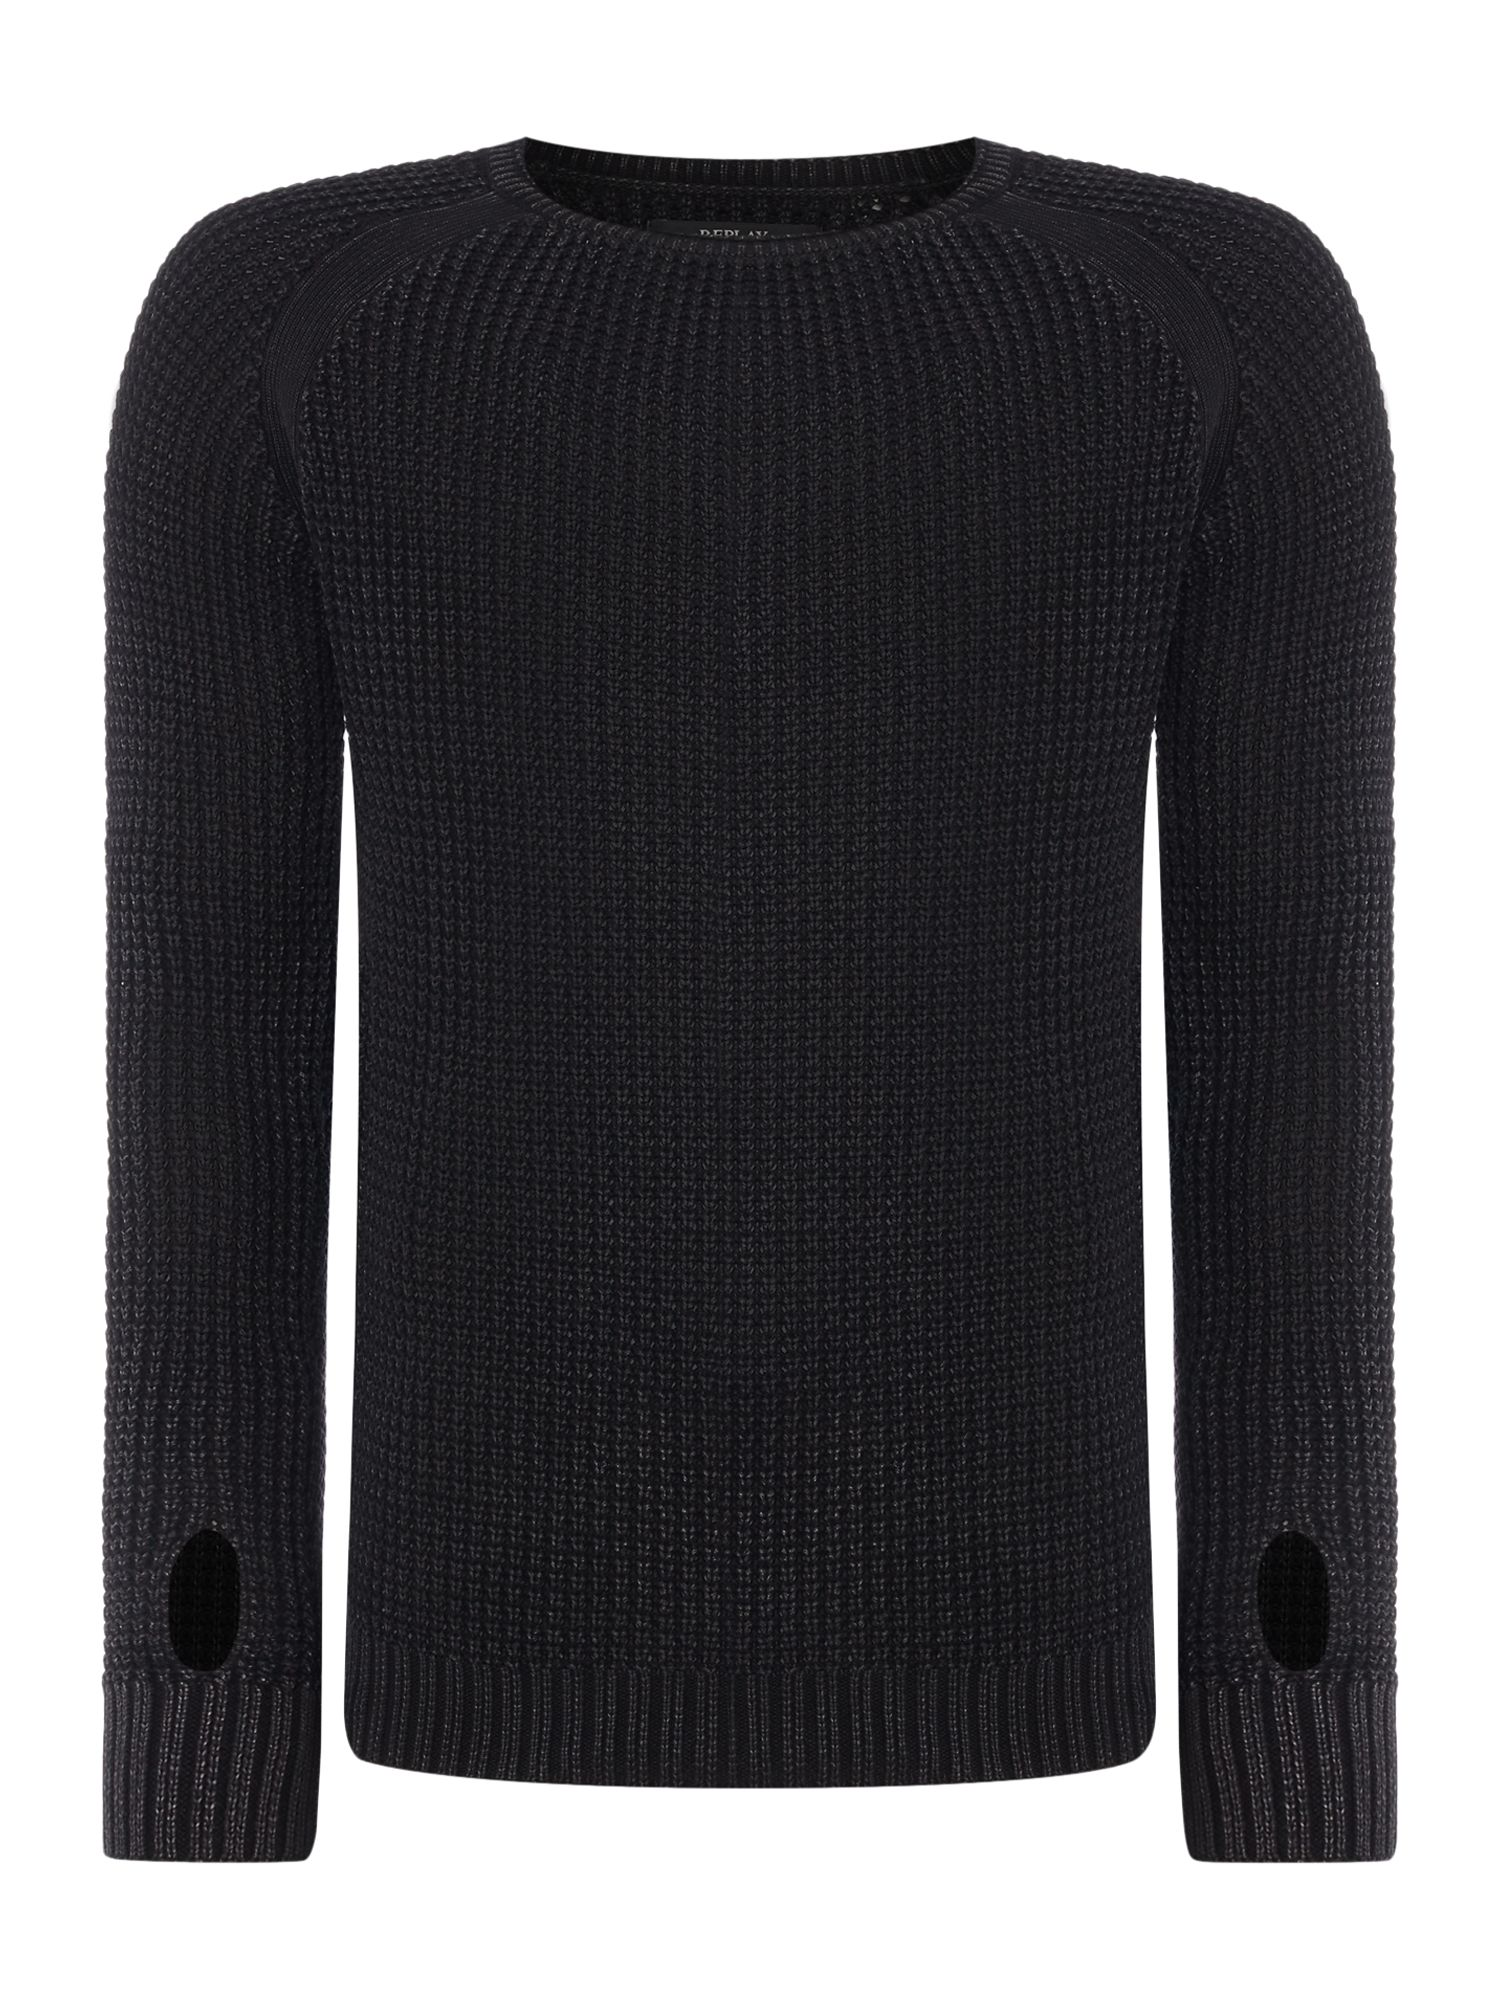 Mens Replay Knitted cotton crewneck jumper Black